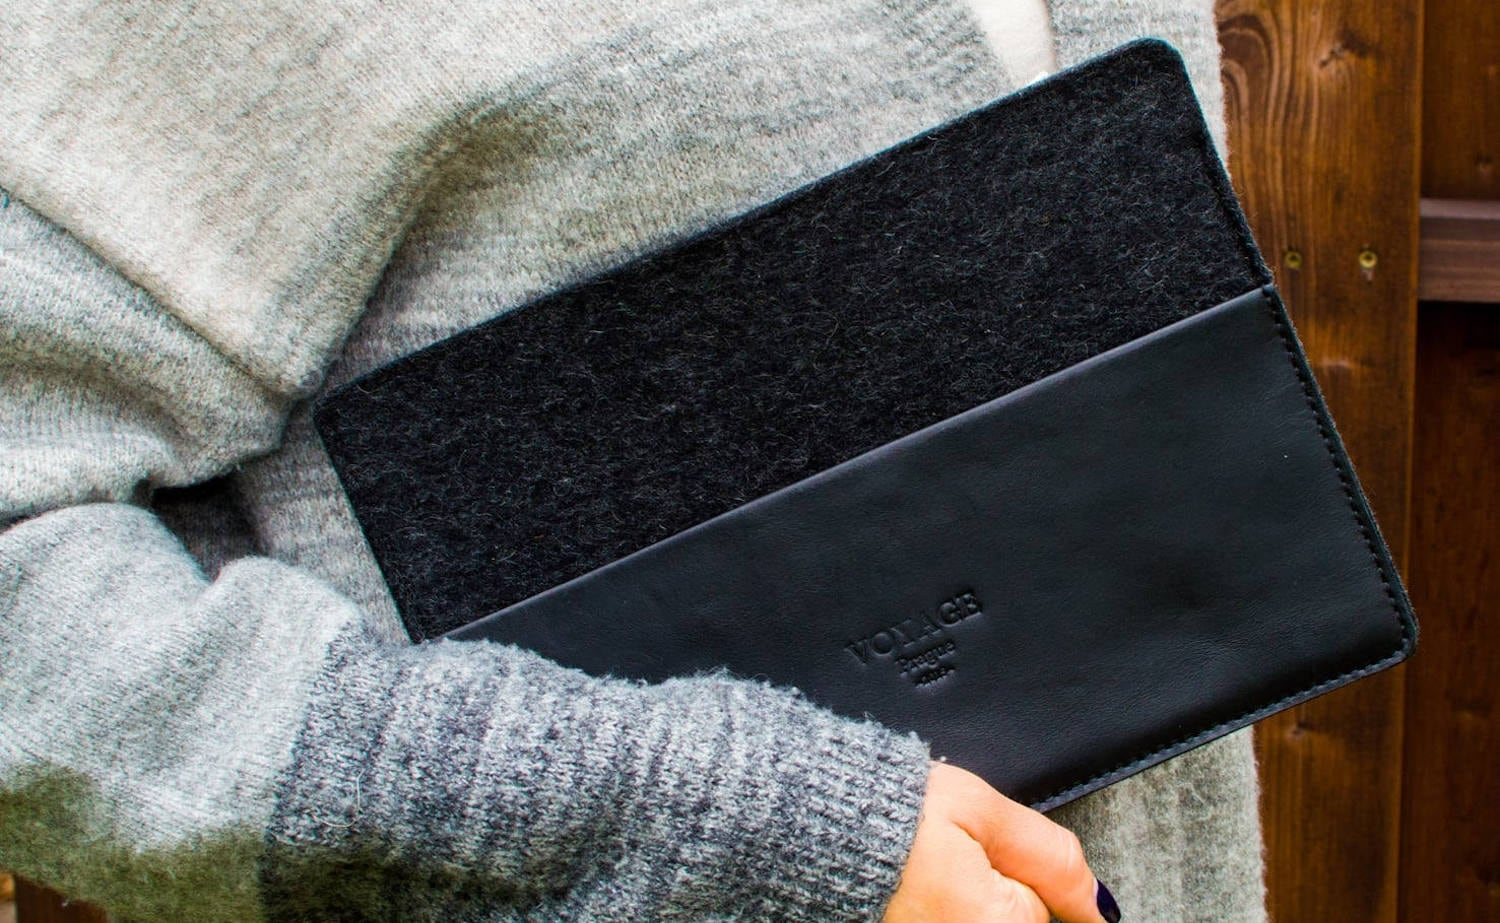 iPad Sleeve Wool Felt Case provides a cozy little home for your iPad